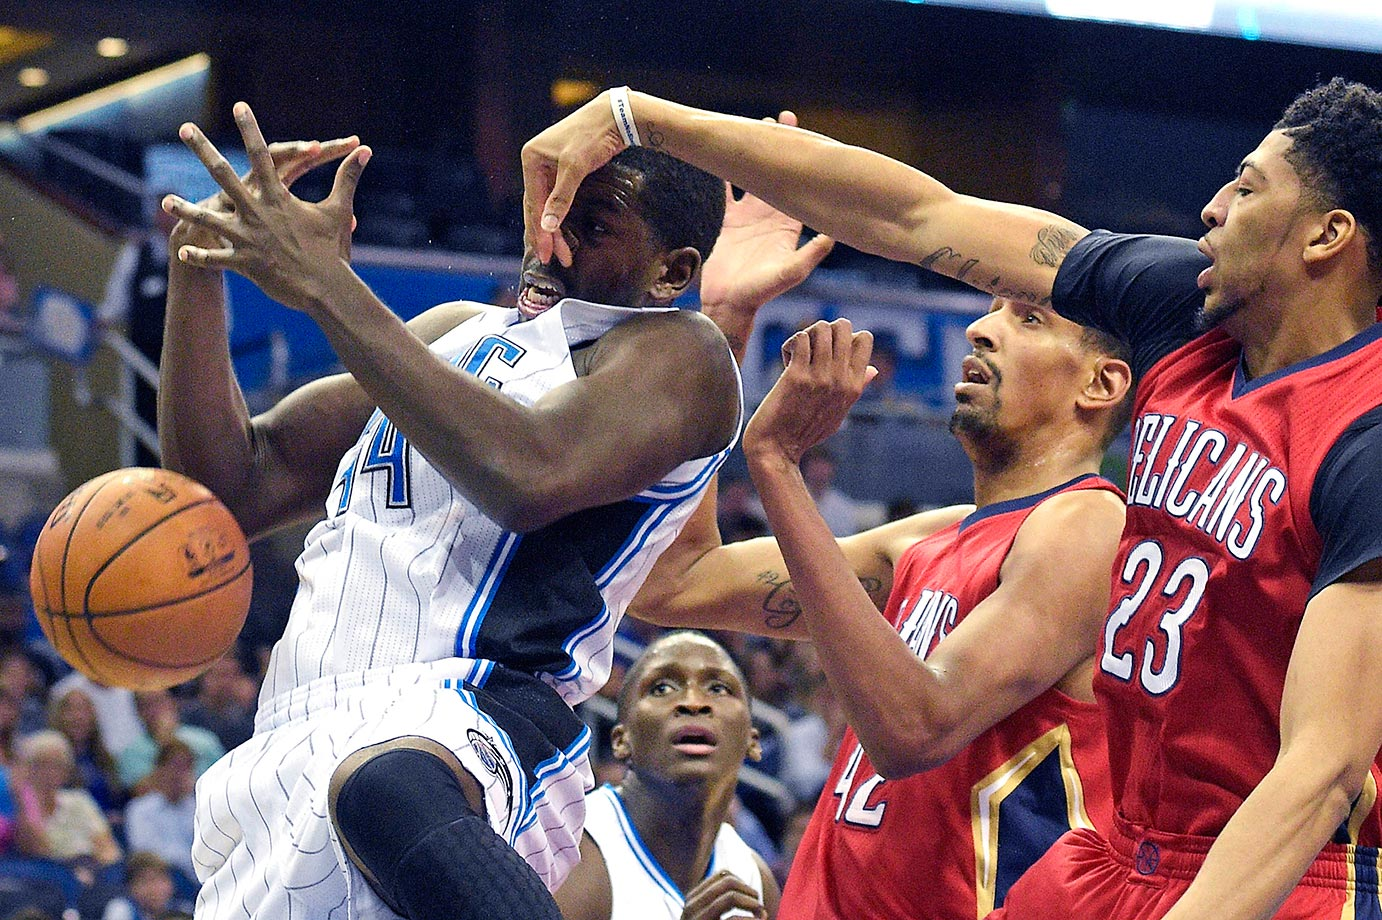 Anthony Davis of the New Orleans Pelicans blocks a shot by Andrew Nicholson of the Orlando Magic.